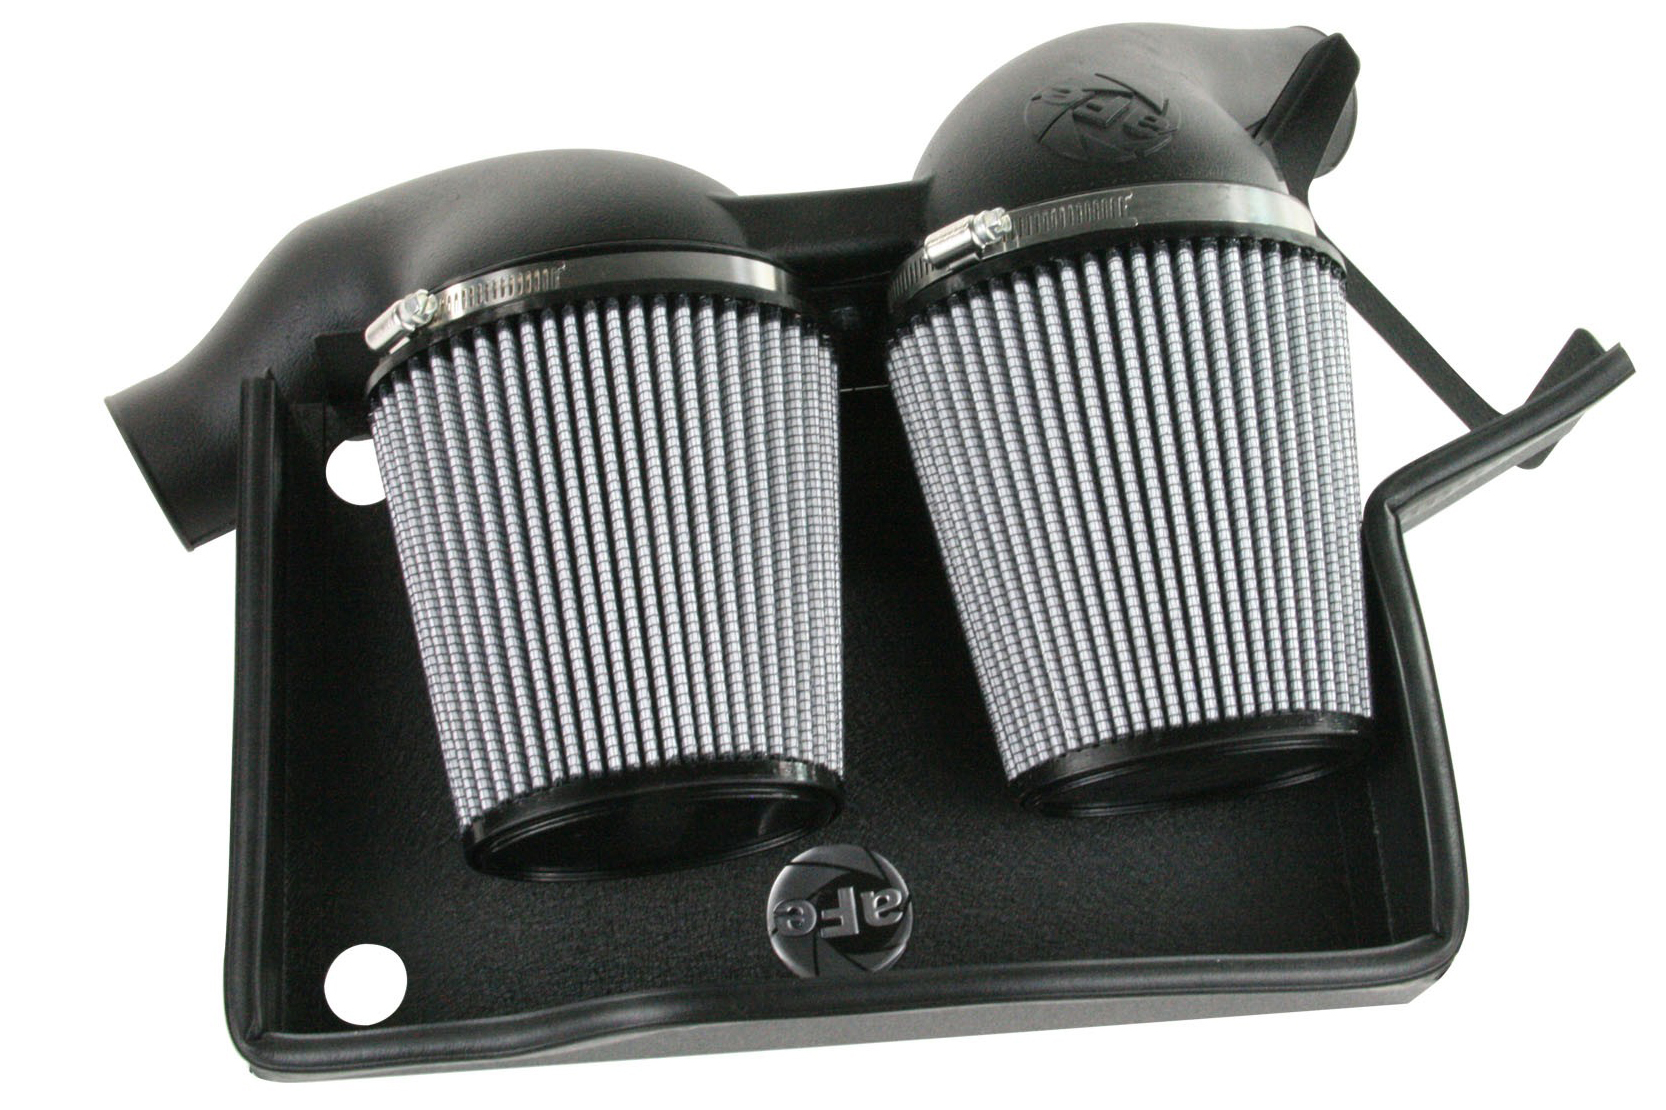 aFe Magnum FORCE Stage 2 Si Air Intake for 2006-10 BMW 135i/1M/335i/535i/Z4 N54 [E82/E90/E92/E60] 1